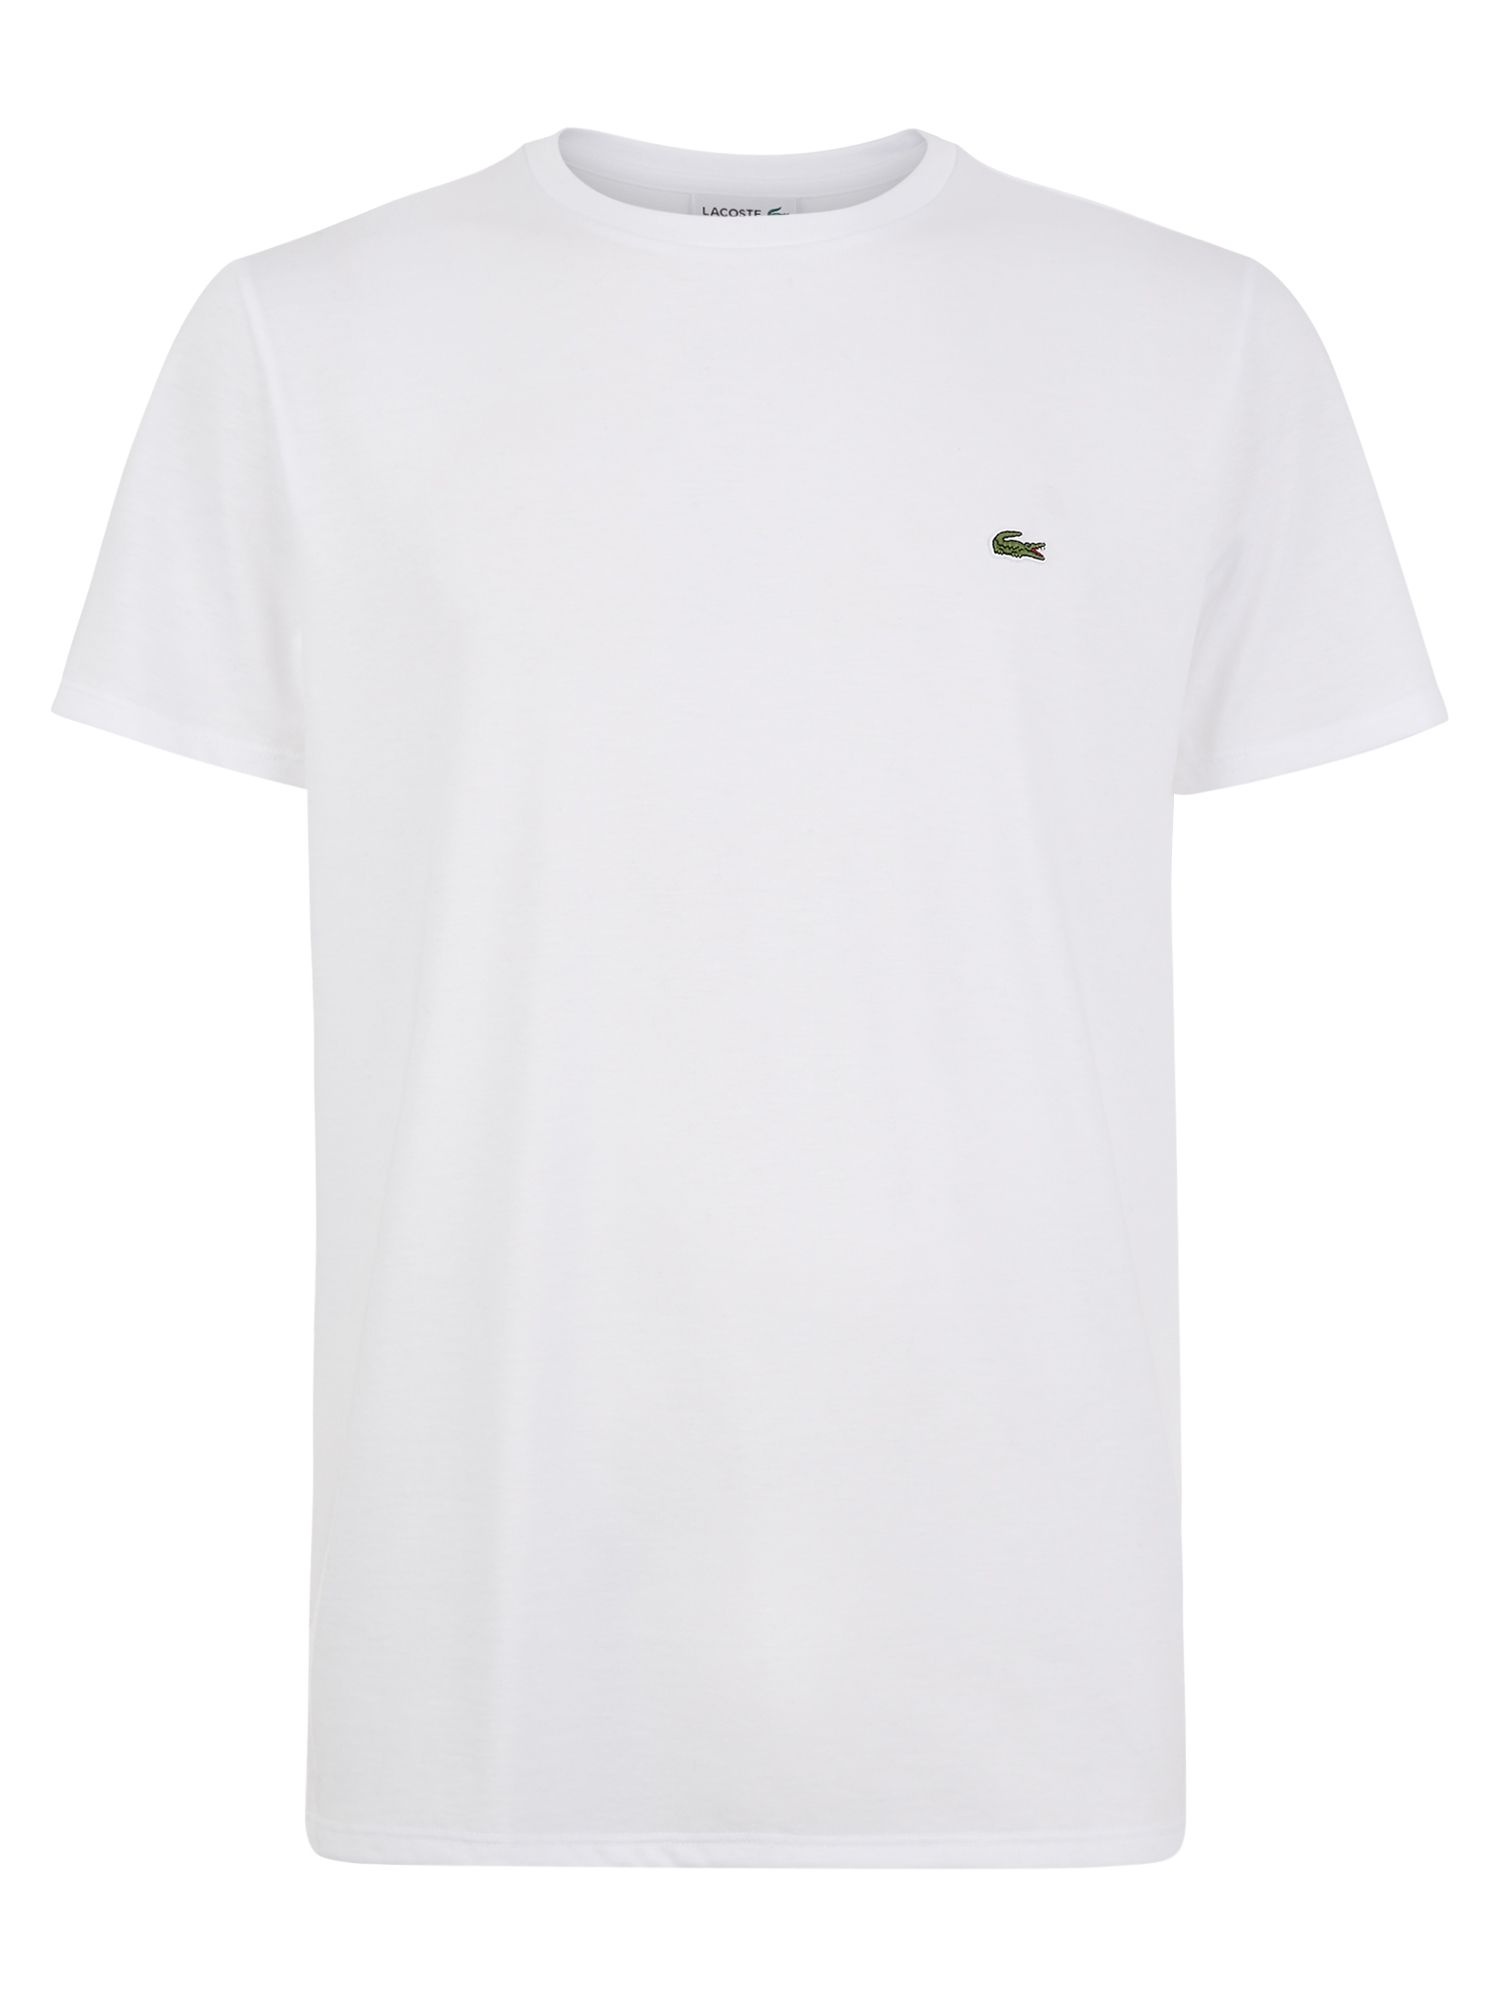 Men's Lacoste Crew Neck Cotton T-shirt, Washed White